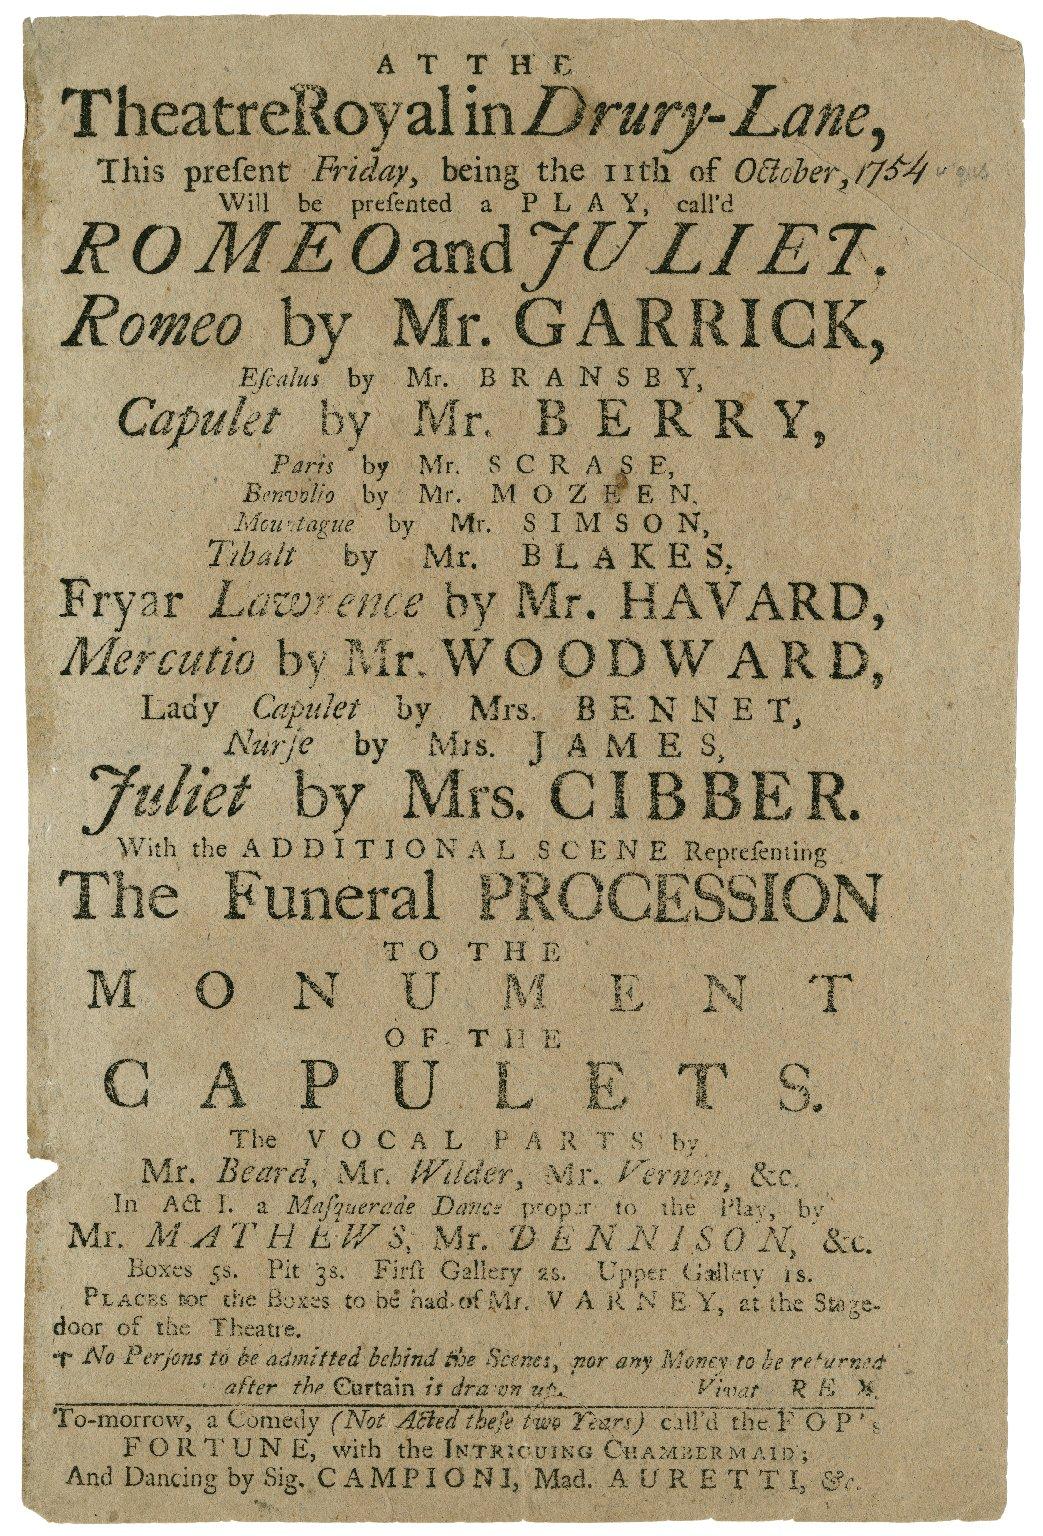 Playbill for a 1754 production of Romeo and Juliet starring David Garrick and advertising the funeral procession to the Capulet monument